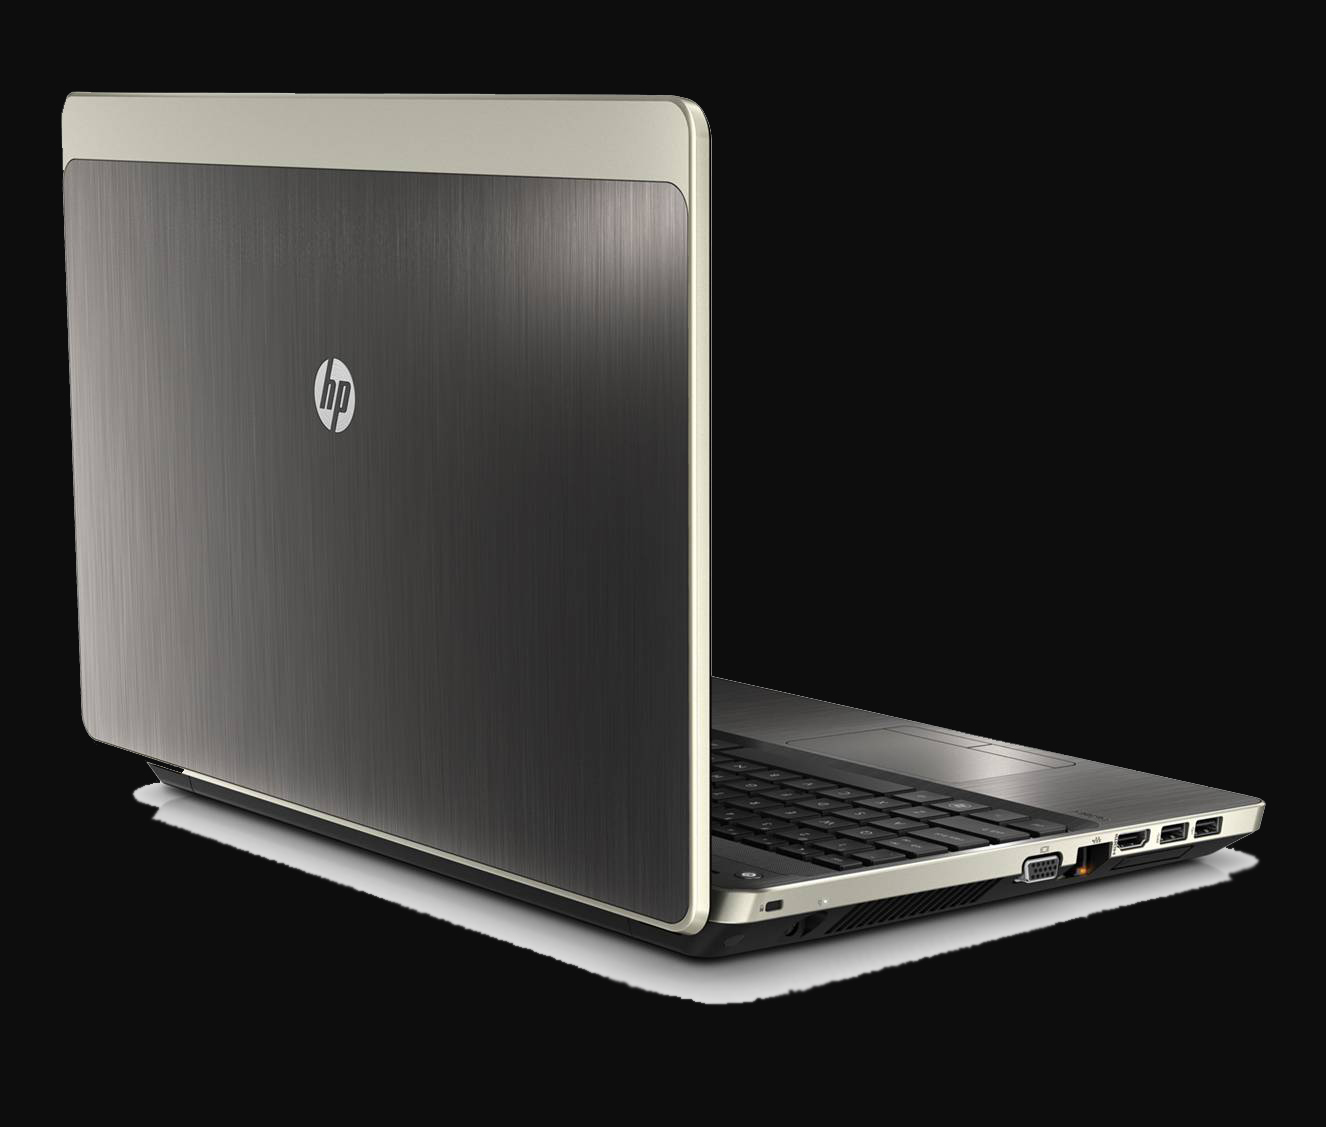 Notebook HP Probook 4530s: characteristics, comparison with peers and reviews of performance 58